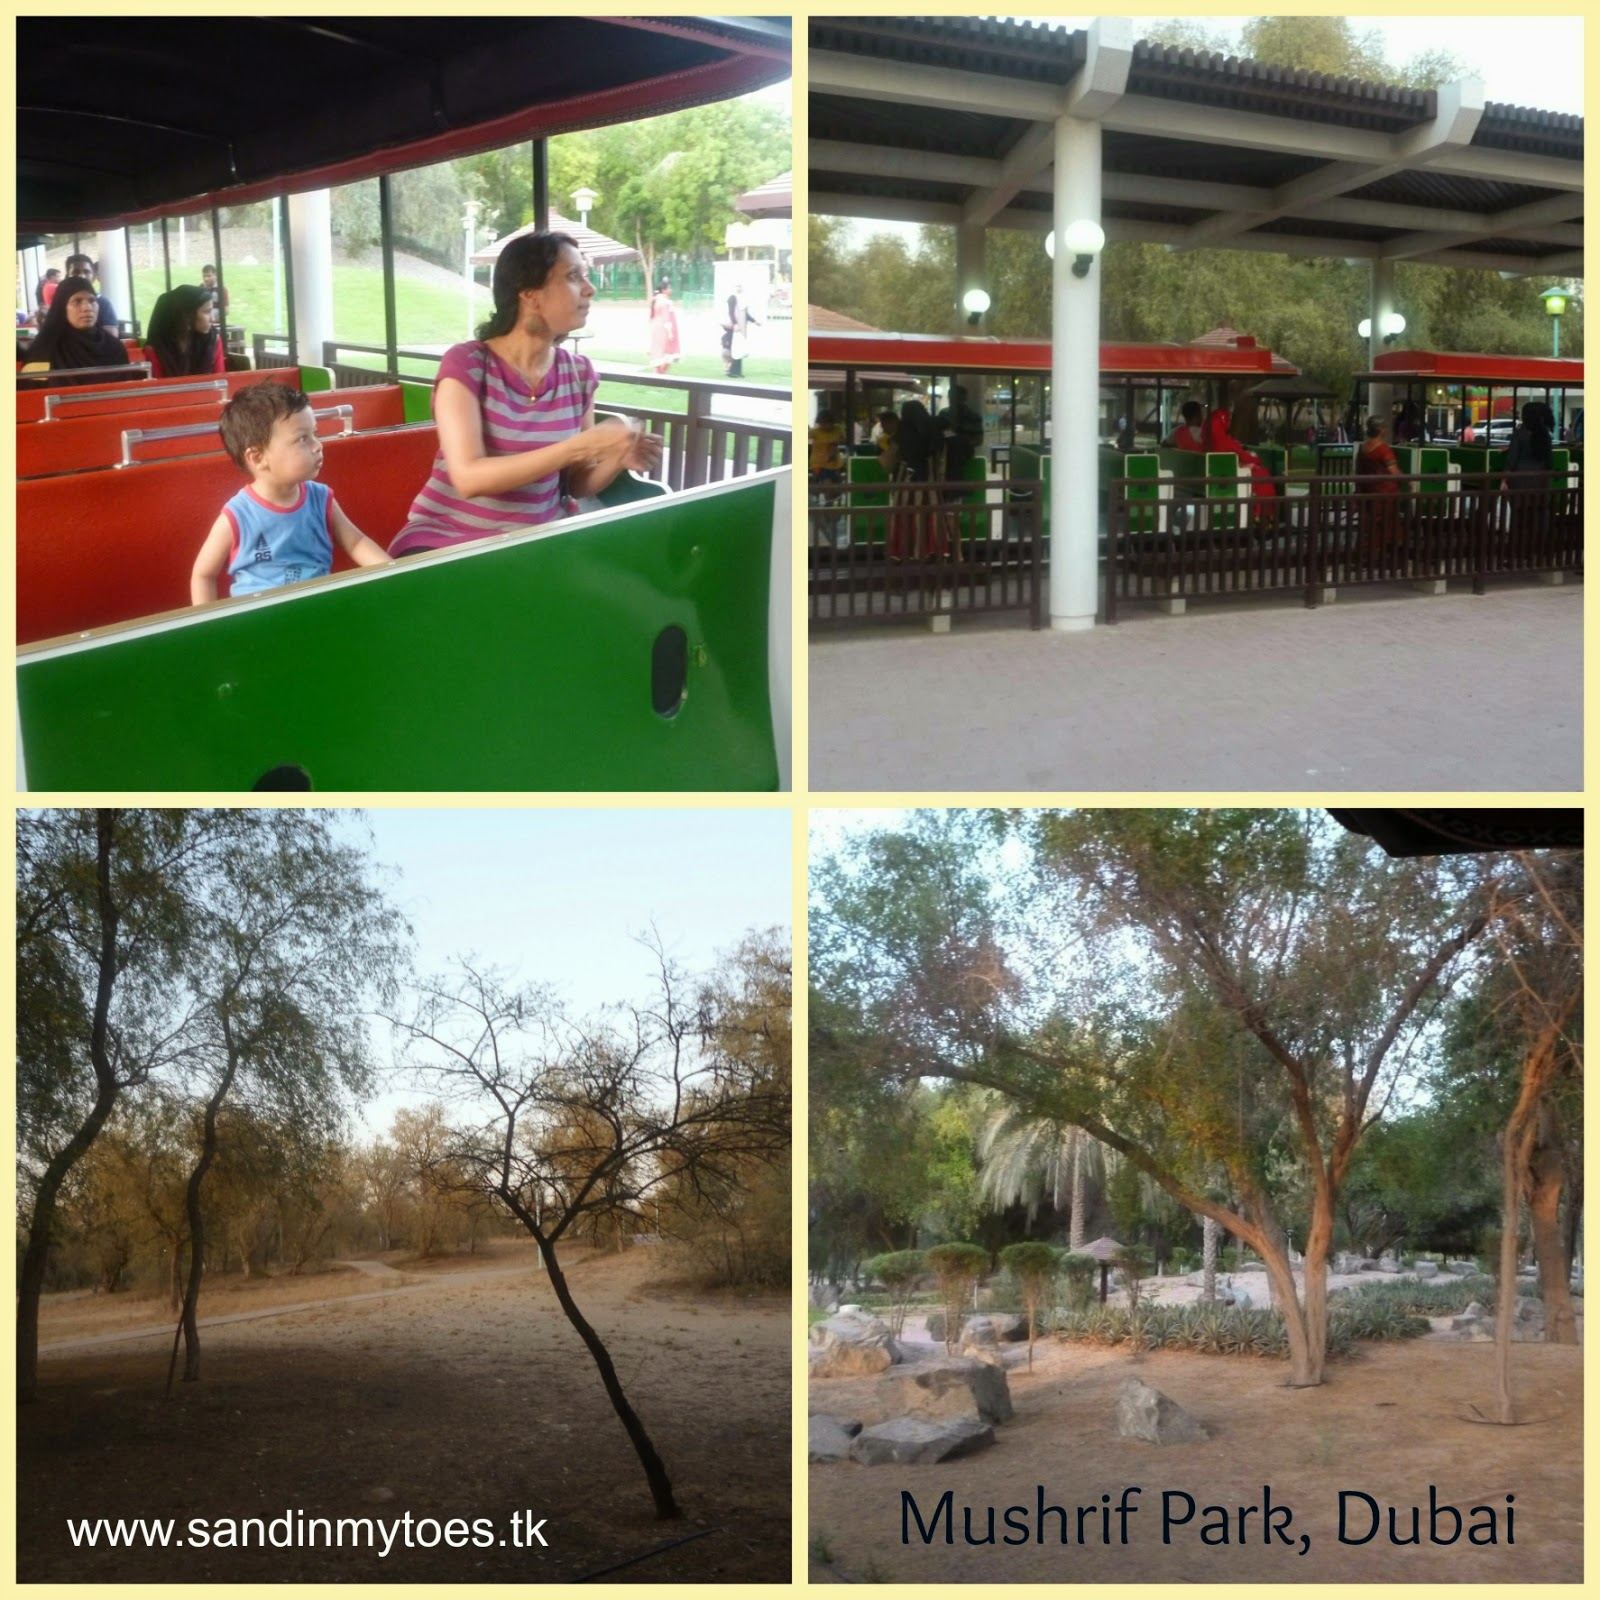 Train ride in Mushrif Park, Dubai